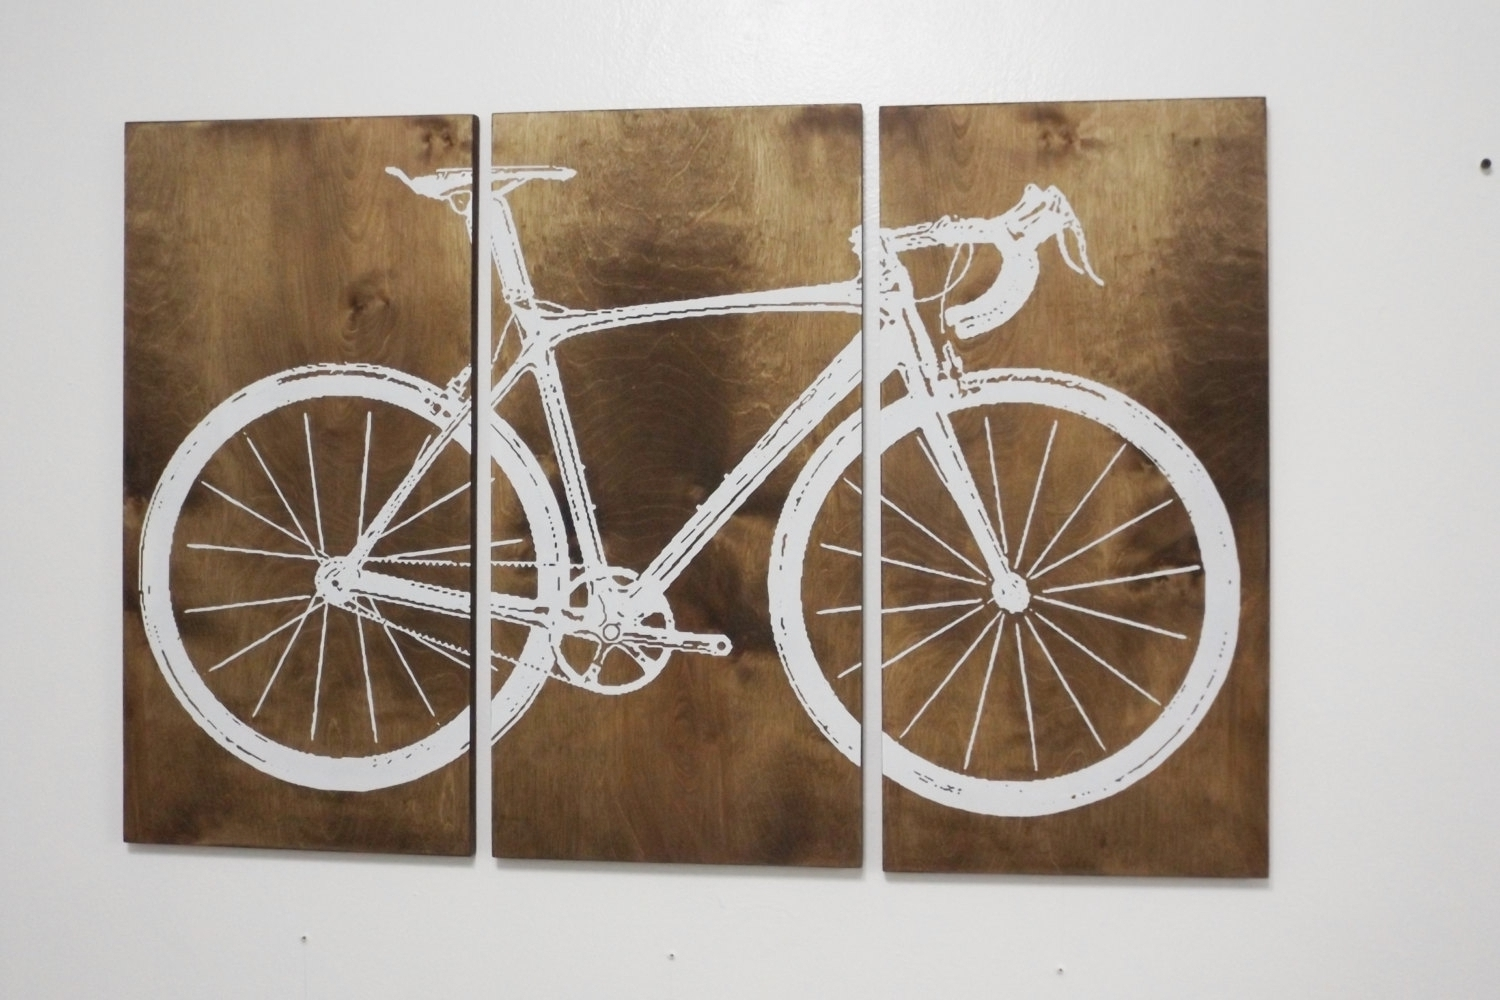 Bicycle Wall Art Intended For Newest Mesmerizing Bike Wall Art Interior Decor Home 2018 Best Of Metal (View 6 of 15)